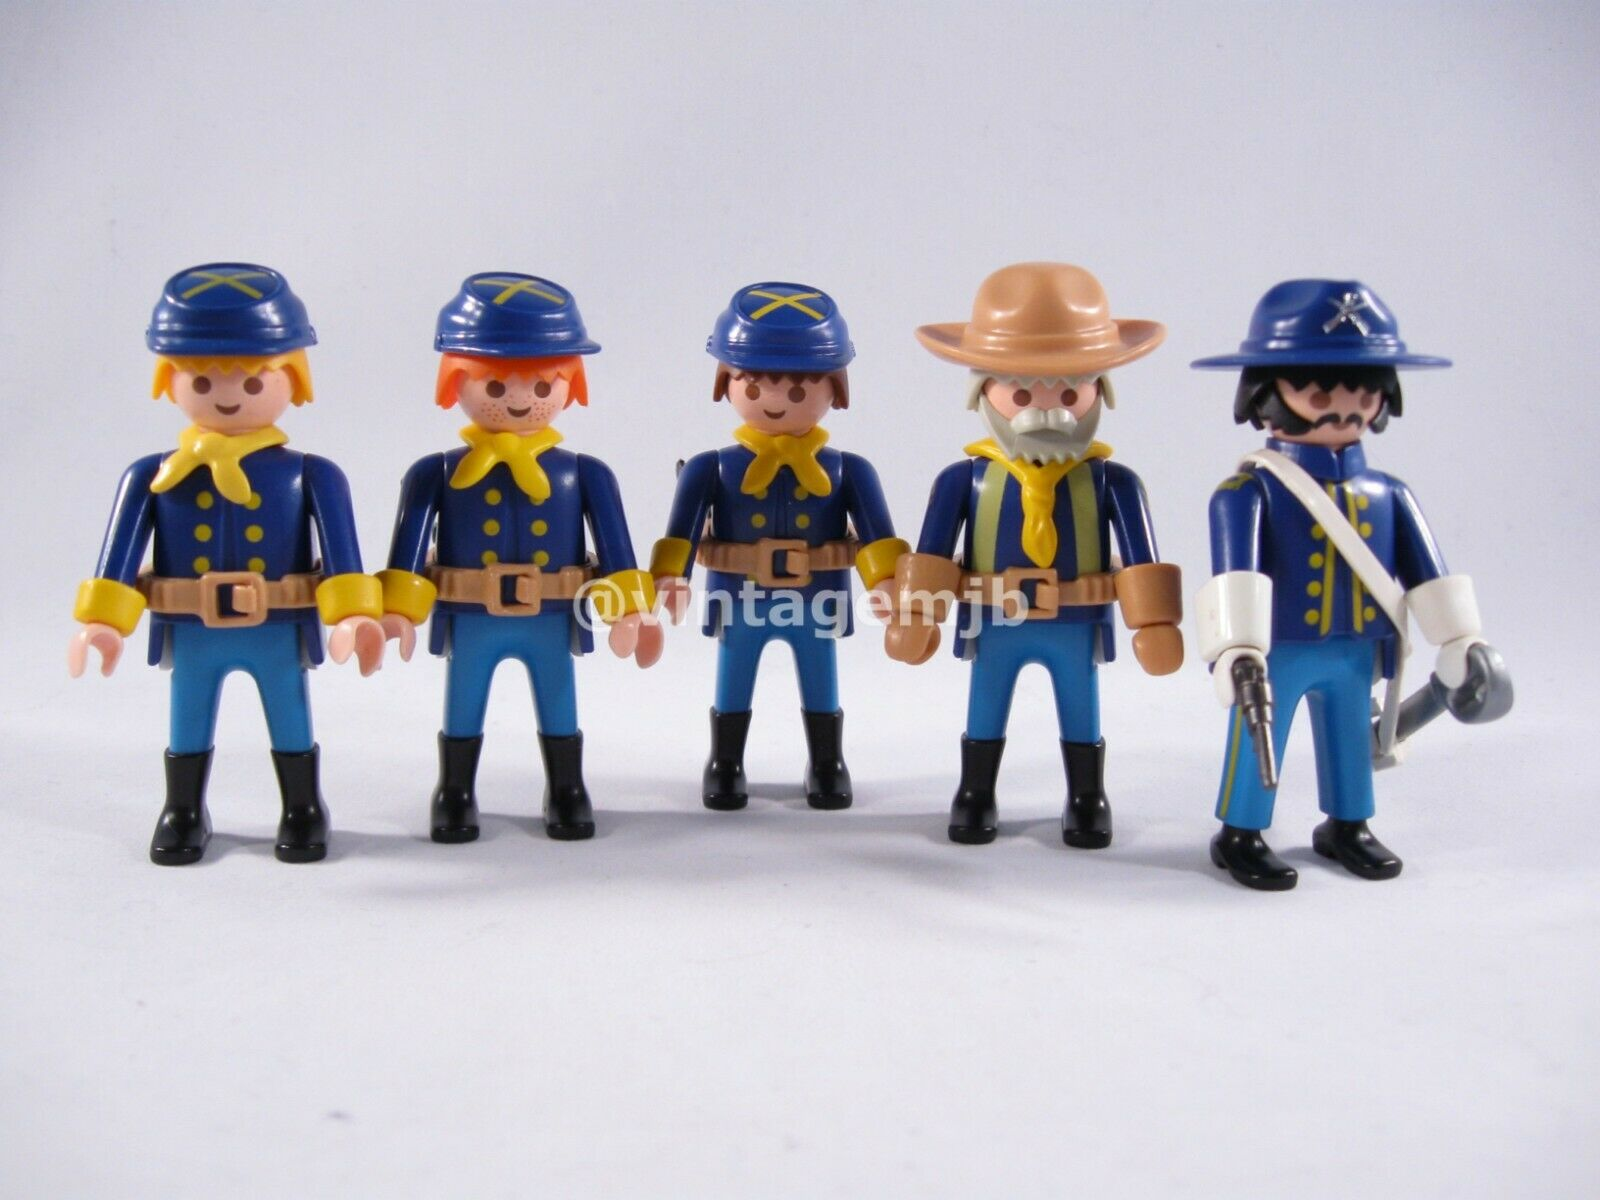 negozio fa acquisti e vendite PLAYMOBIL VINTAGE 3806 3806 3806 FORT GLORY MILITARY-completare SET OF SOLDIERS -EXCELLENT   marchio famoso